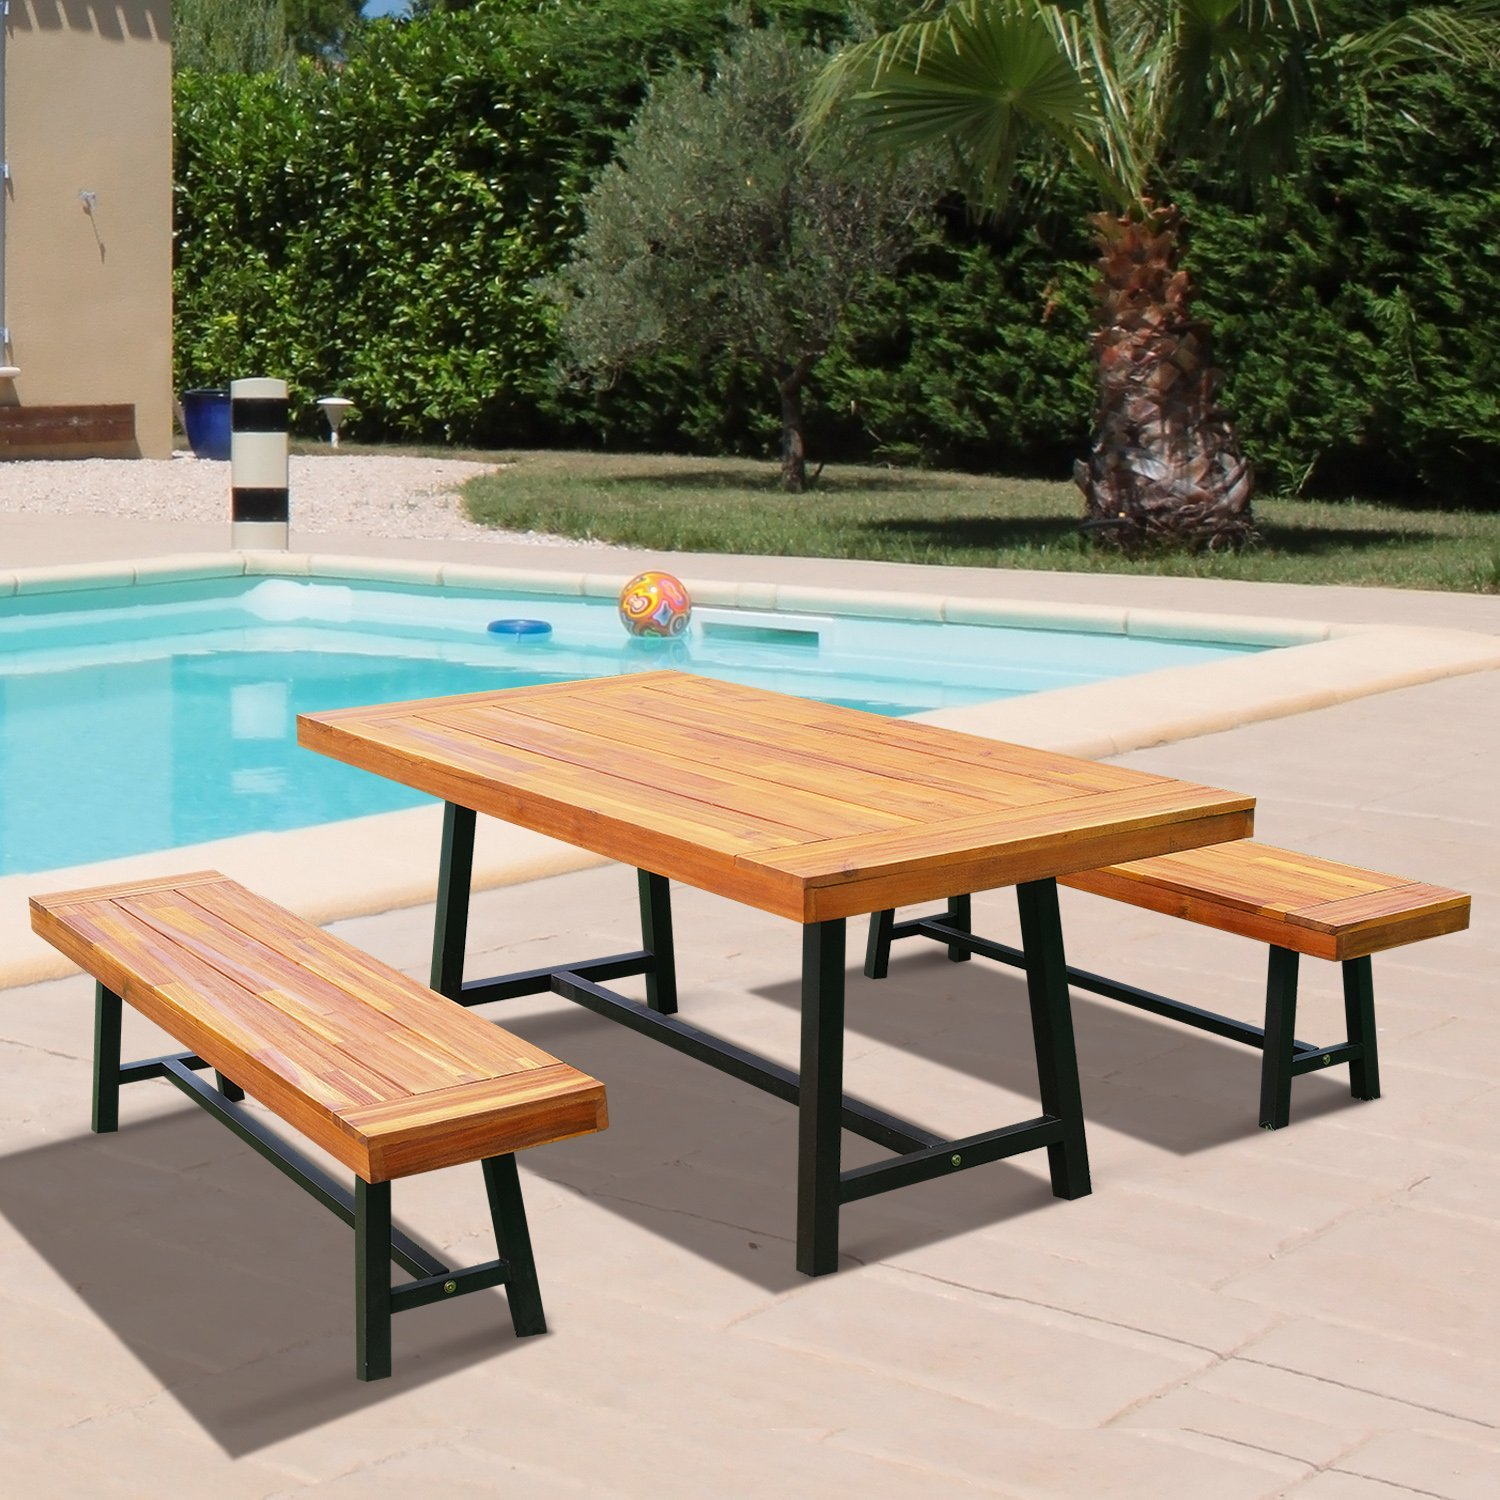 Click here to buy 71 Rustic Acacia Wood Outdoor Picnic Table and 63� Bench Seat Set Natural Red Wood.